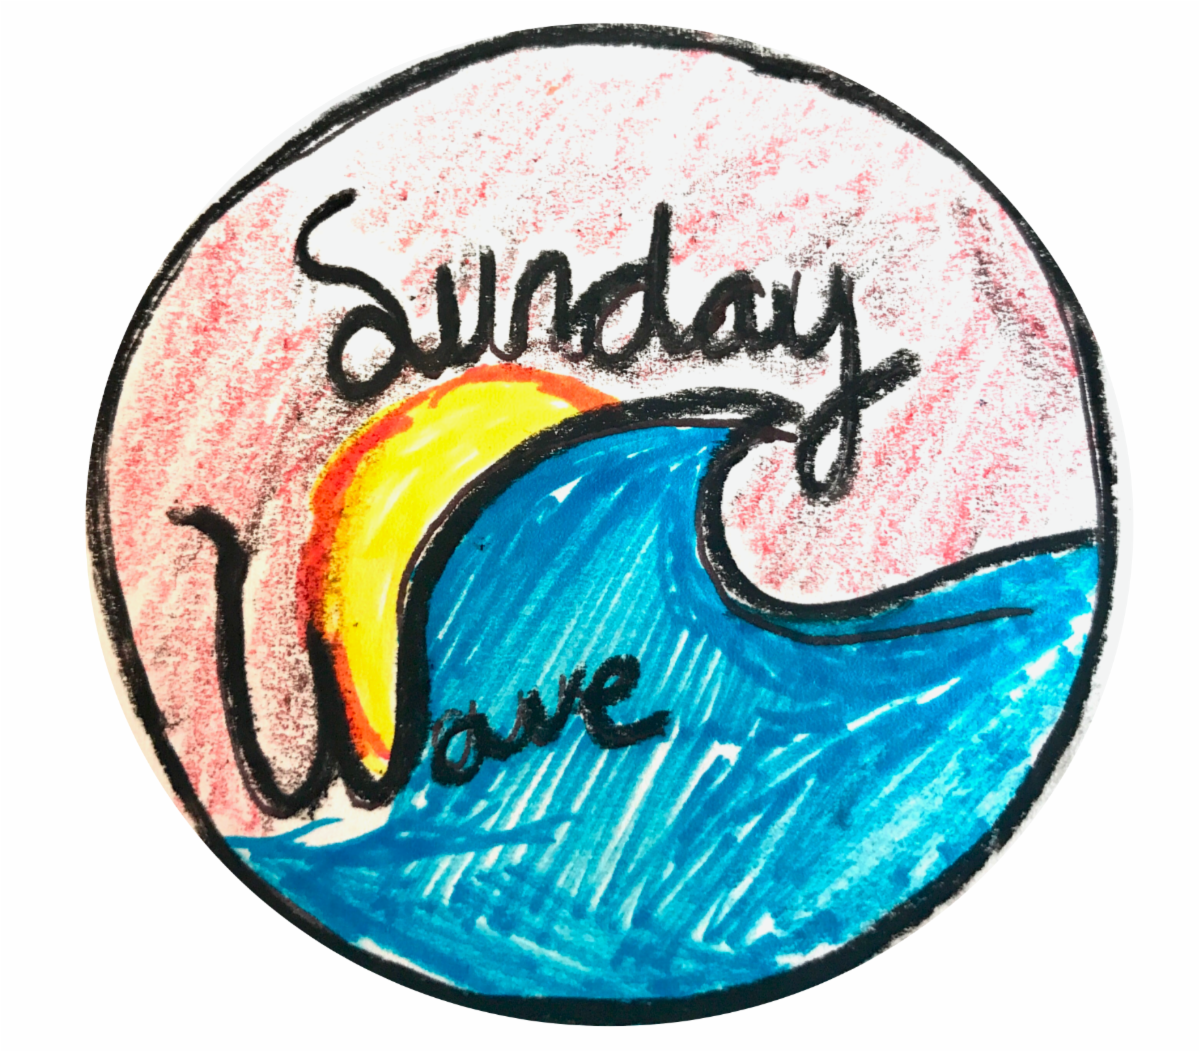 Sea Crest School Sunday Wave